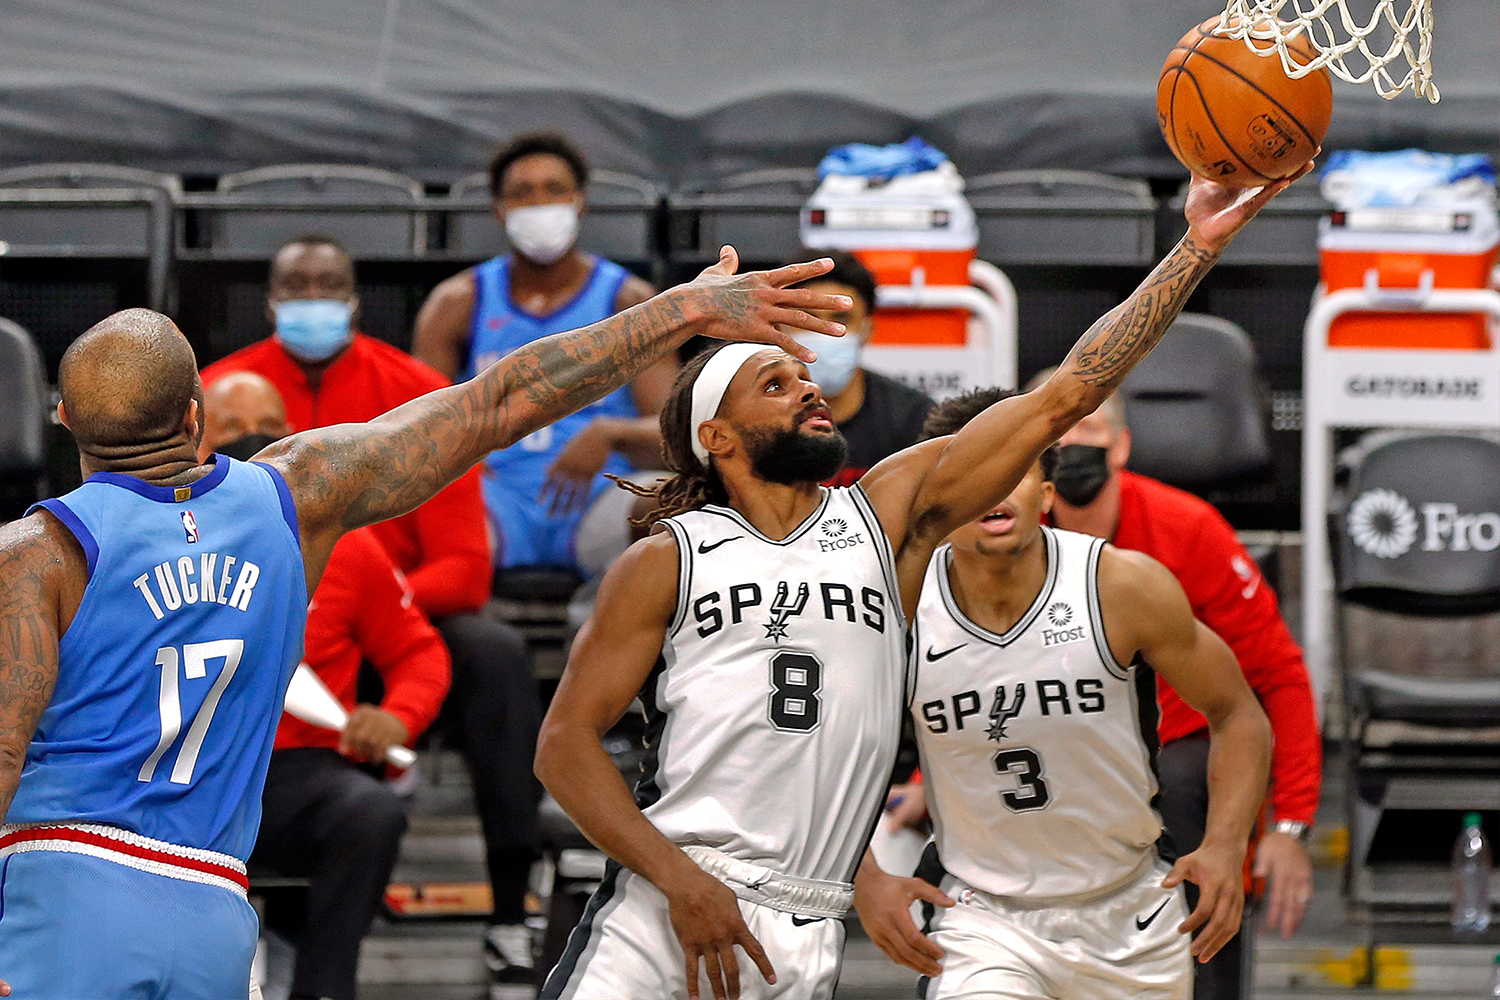 Patty Mills #8 of the San Antonio Spurs stretches to the basket past PJ Tucker #17 of the Houston Rockets